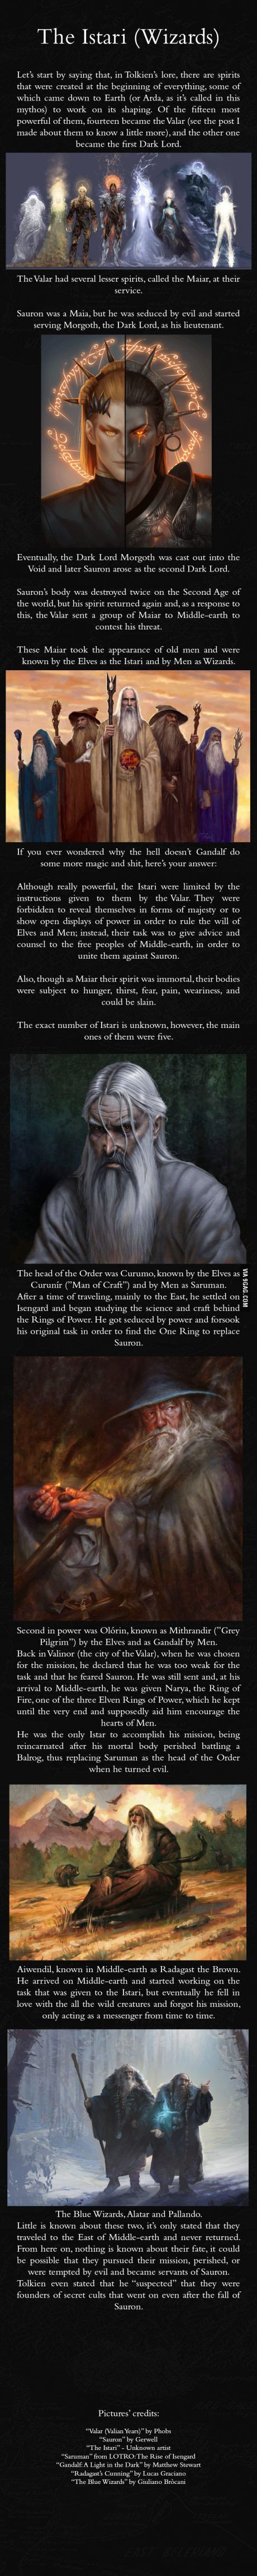 """The Wizards of Middle-earth - J.R.R. Tolkien Mythology"" Gotta look up the accuracy,  but really cool!"